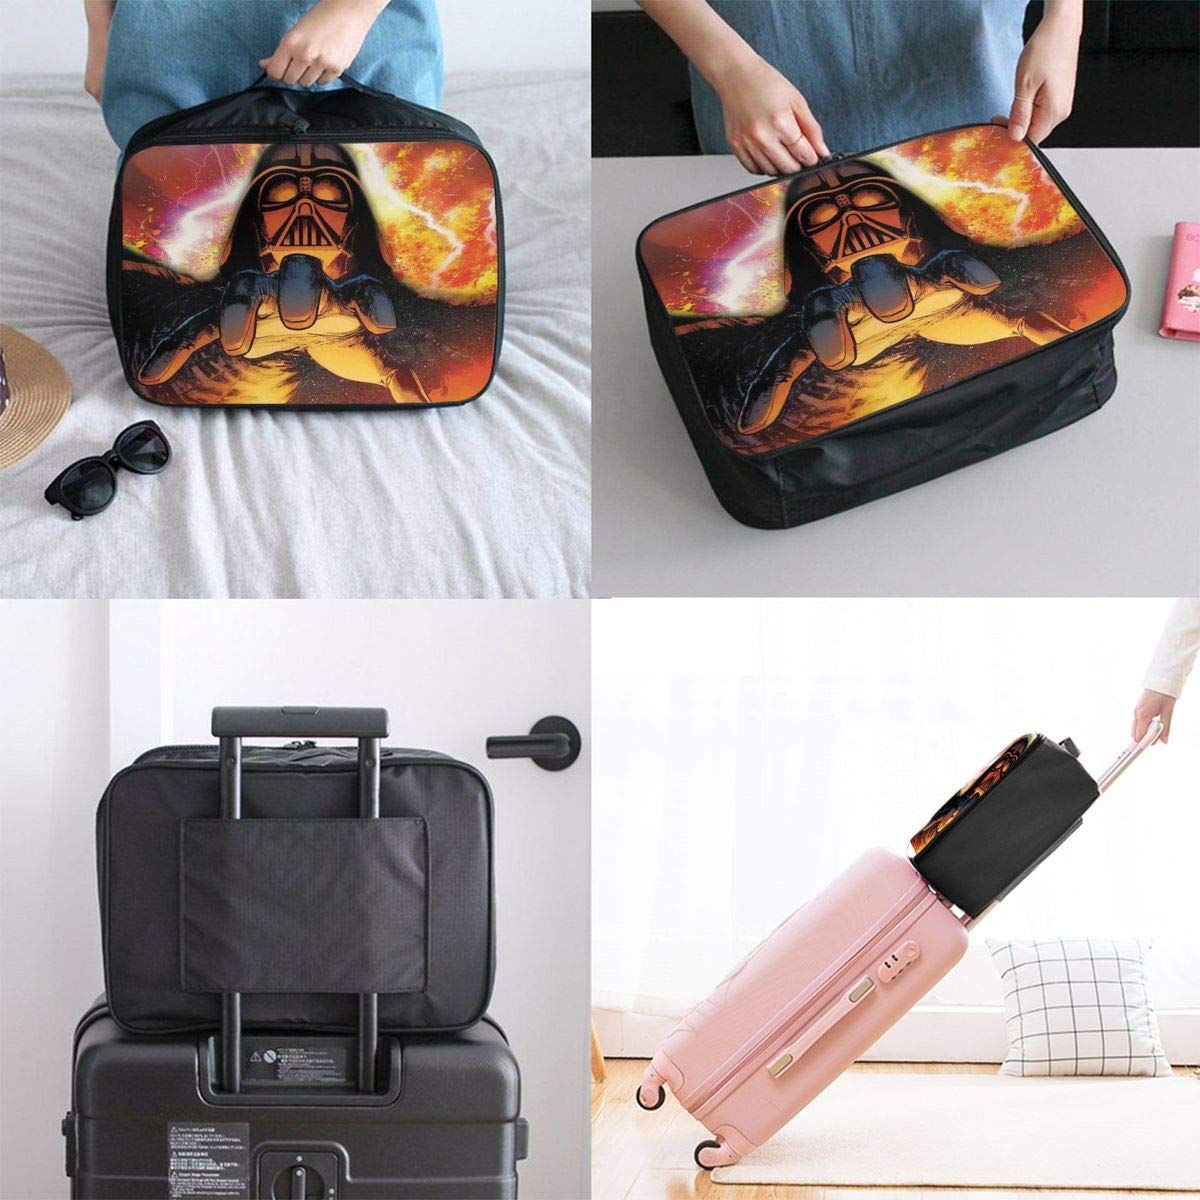 BOKAIKAI1306 Fierce D-Darth Vader Unisex Adults Fashion Lightweight Large Capacity Portable Large Travel Duffel Bag Men Womens Luggage Bag 3D Print DIY Boarding Box